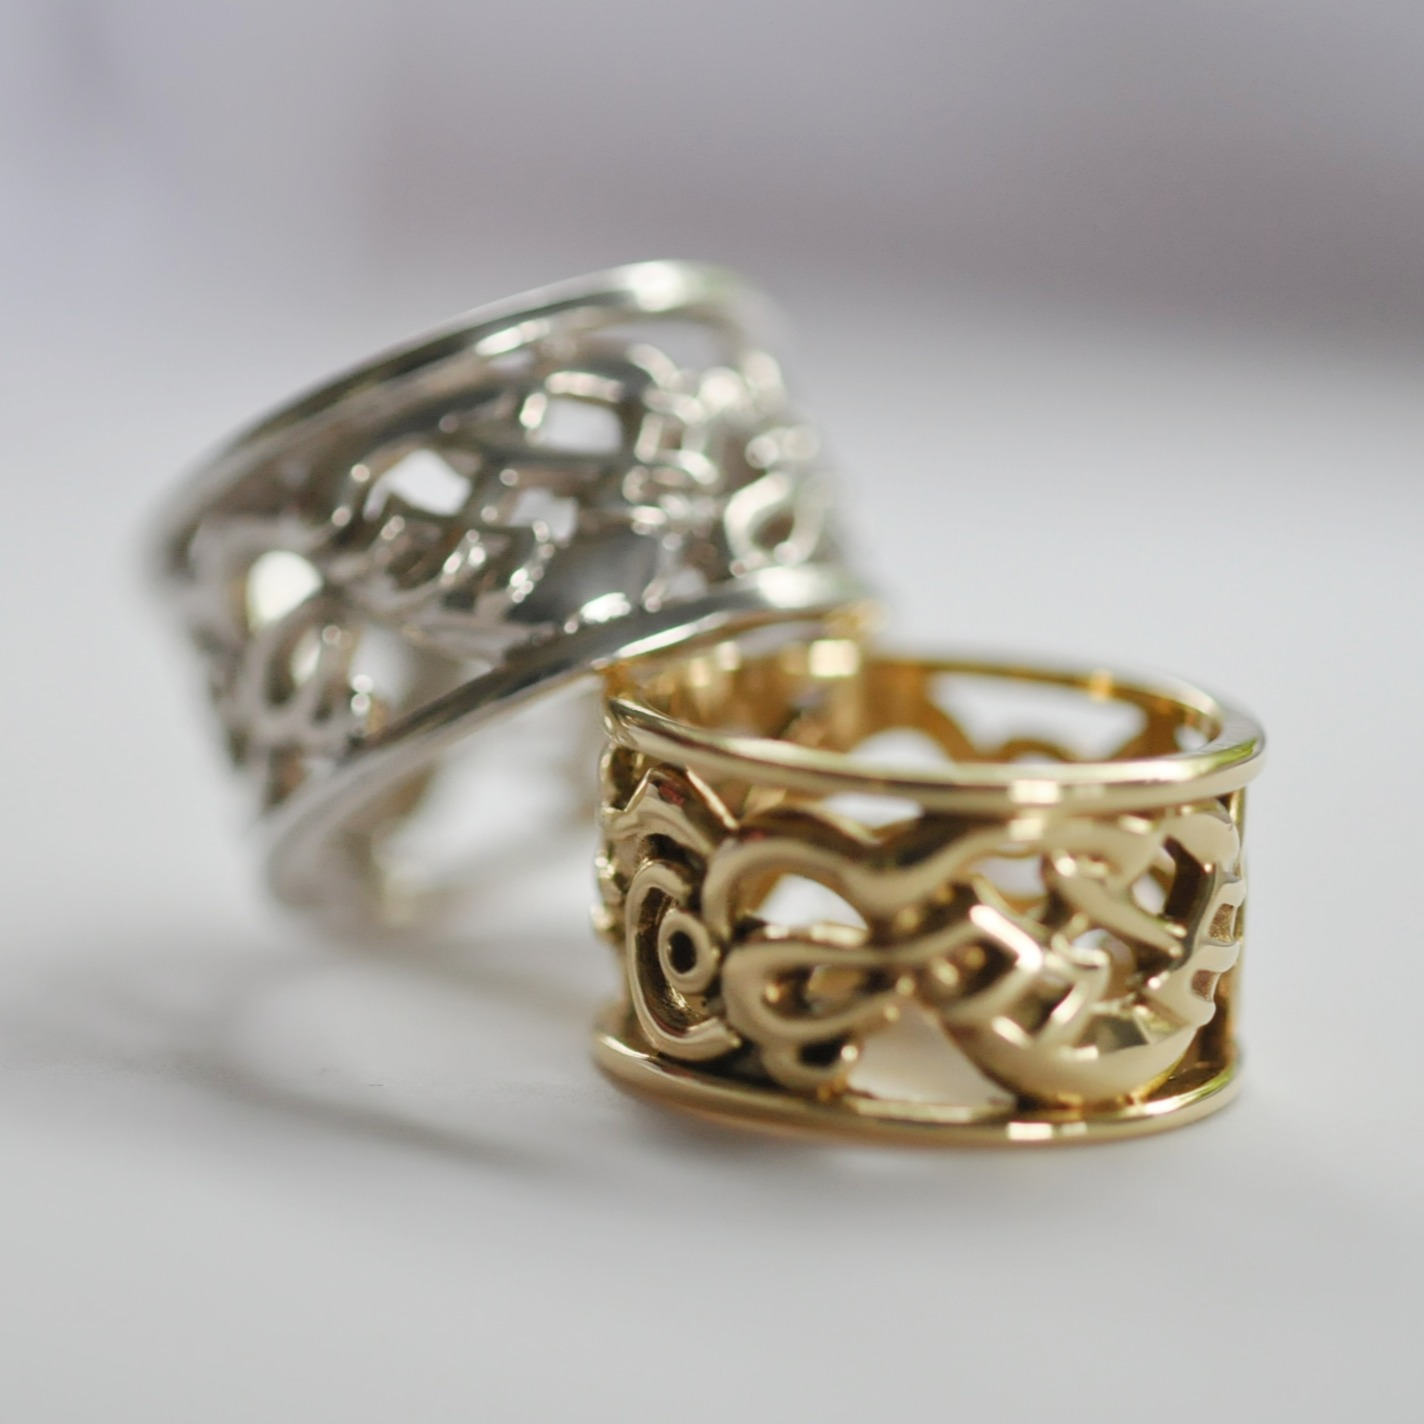 Lintel ring in gold & silver